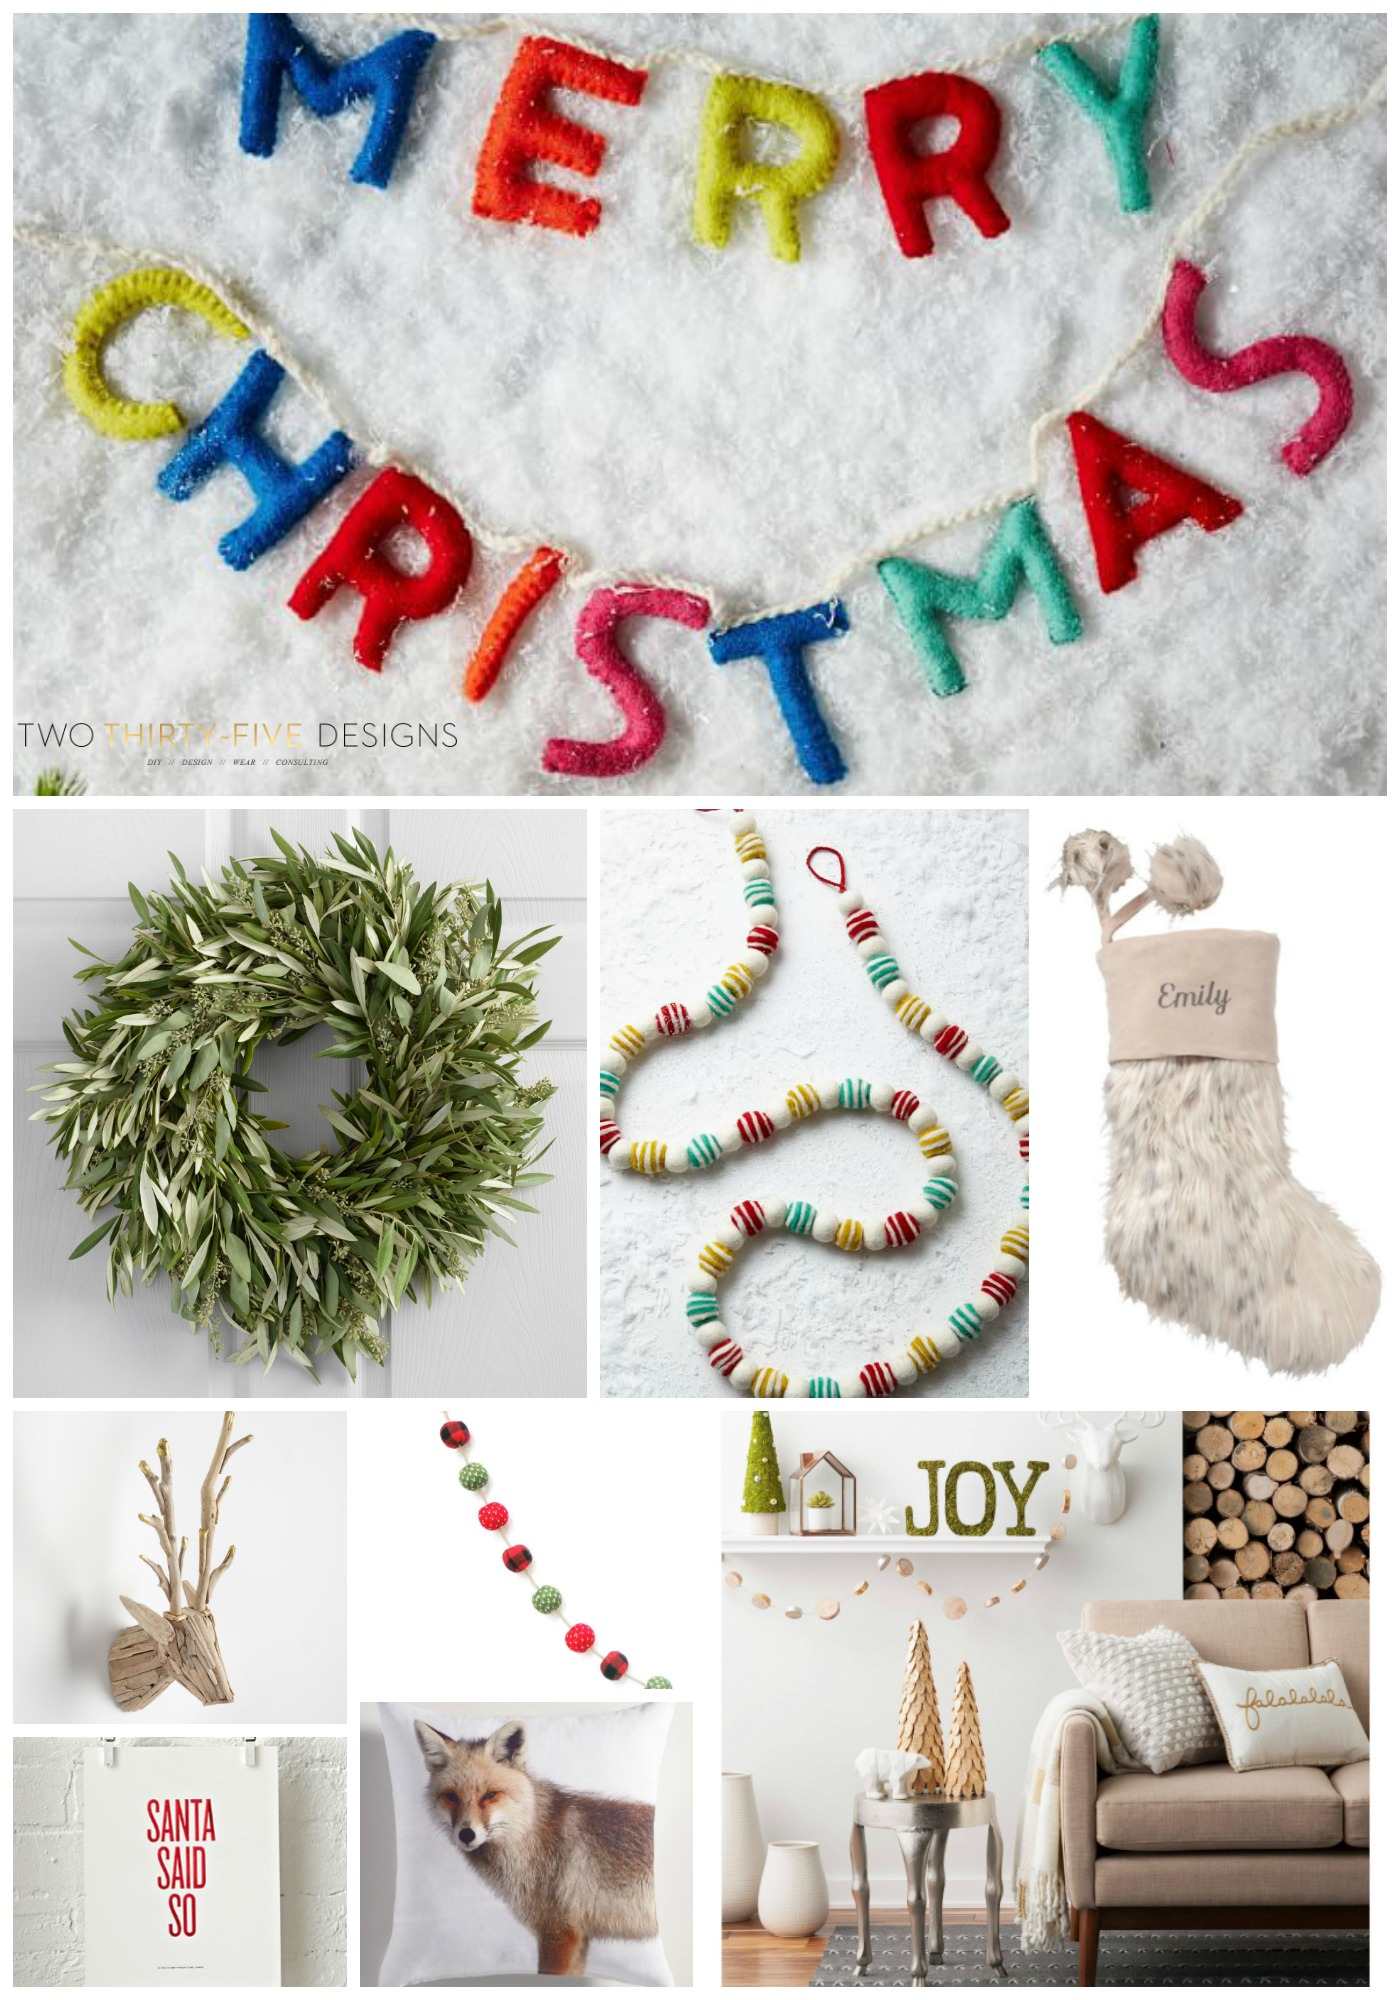 Top Ten Christmas Decor Items By Two Thirty Five Designs